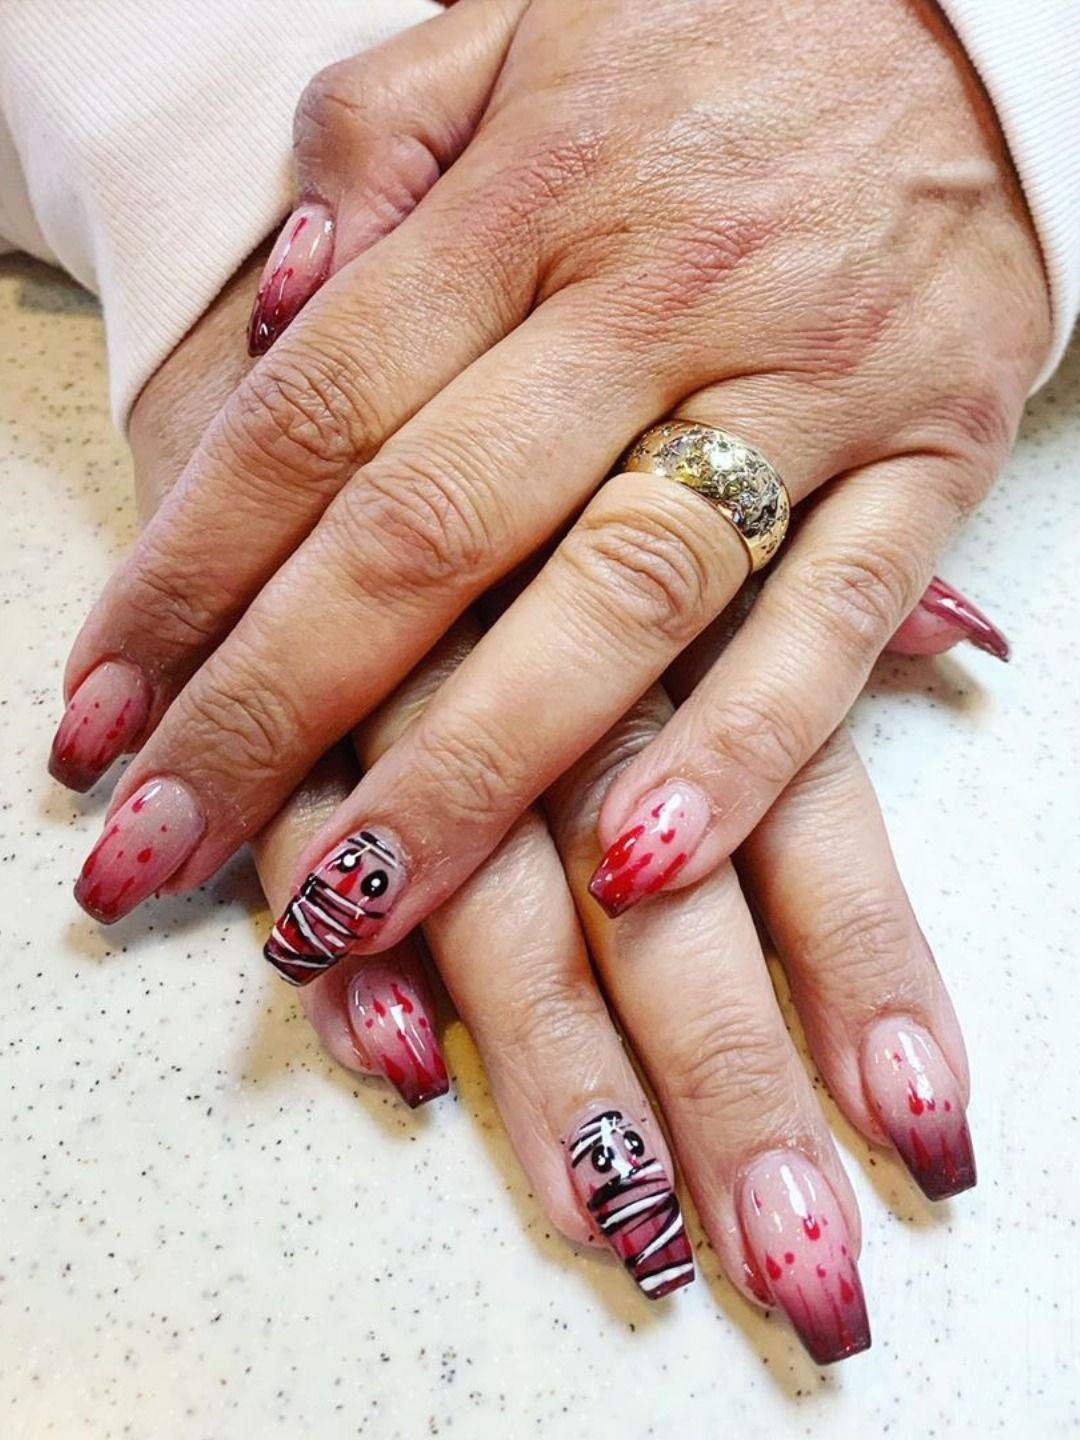 Best Halloween Nail Ideas in 2019 | Short coffin nails ...